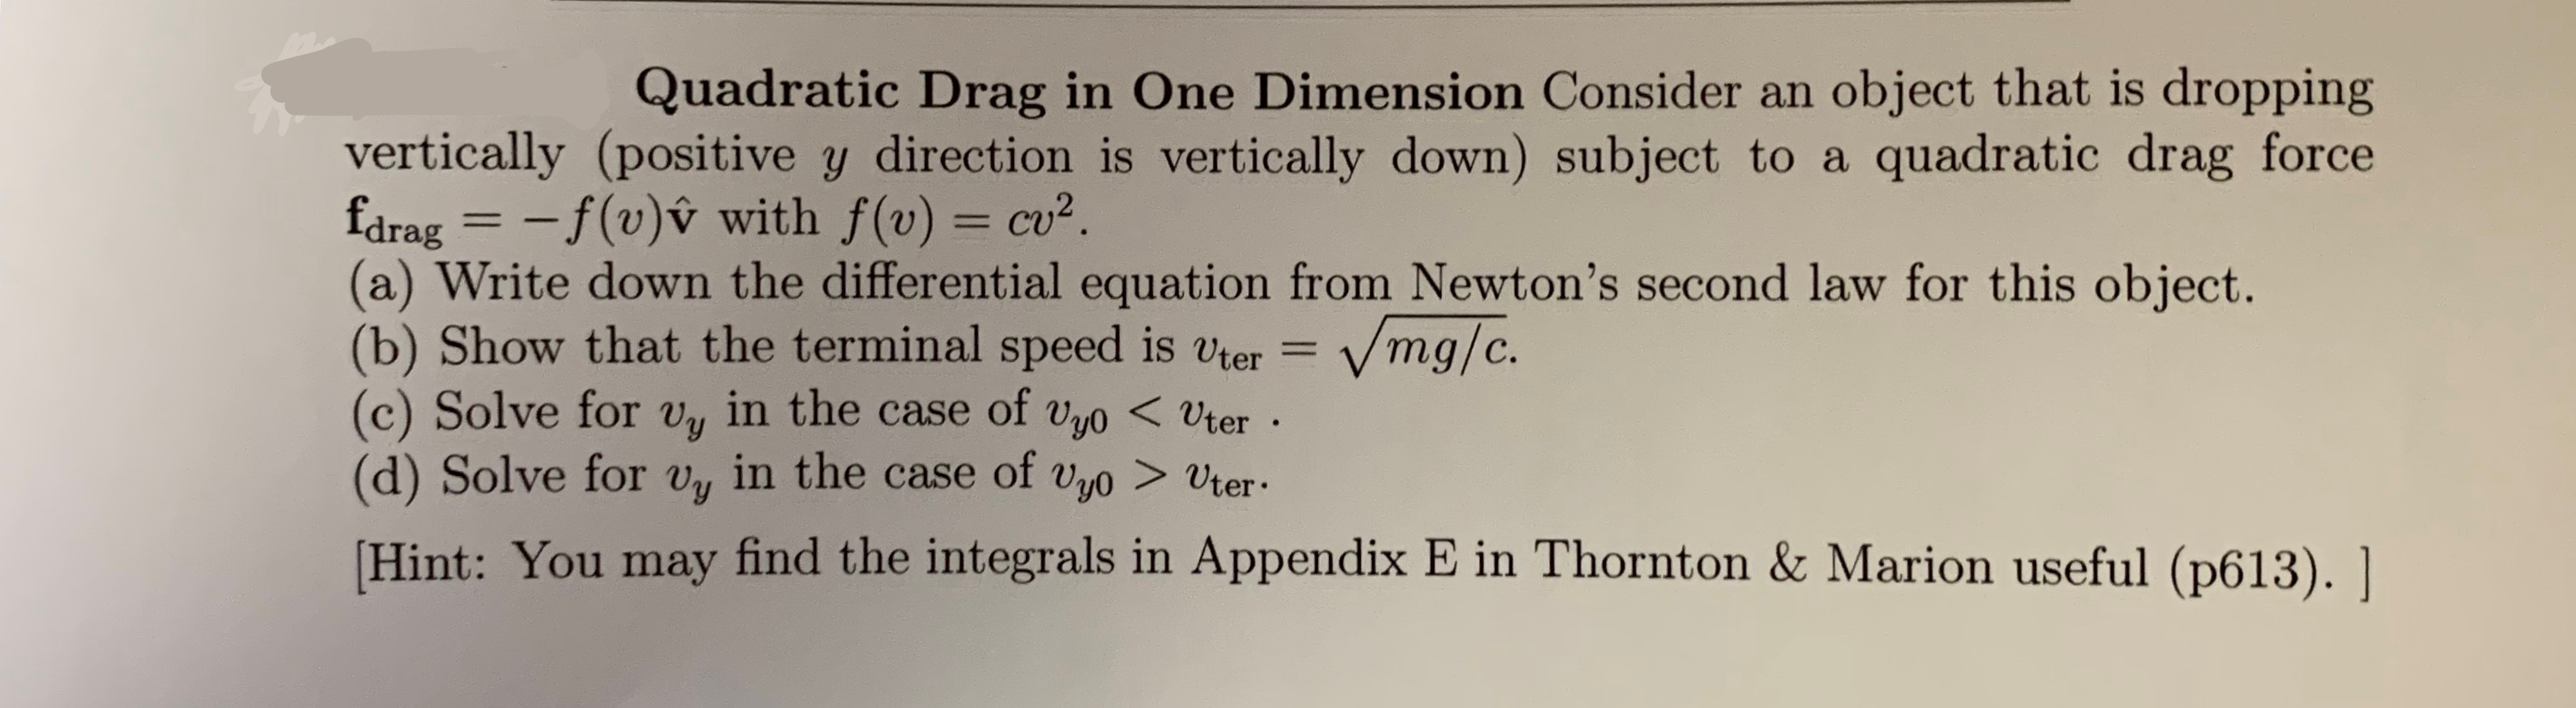 Quadratic Drag in One Dimension Consider an object that is dropping quadratic drag force vertically (positive y direction is vertically down) subject to a fdrag = -f(v)v with f(v) cu2. (a) Write down the differential equation from Newton's second law for this object. (b) Show that the terminal speed is vter = (c) Solve for vy in the case of vyo<Uter (d) Solve for v in the case of vyo> Uter Vmg/c. Hint: You may find the integrals in Appendix E in Thornton & Marion useful (p613). |